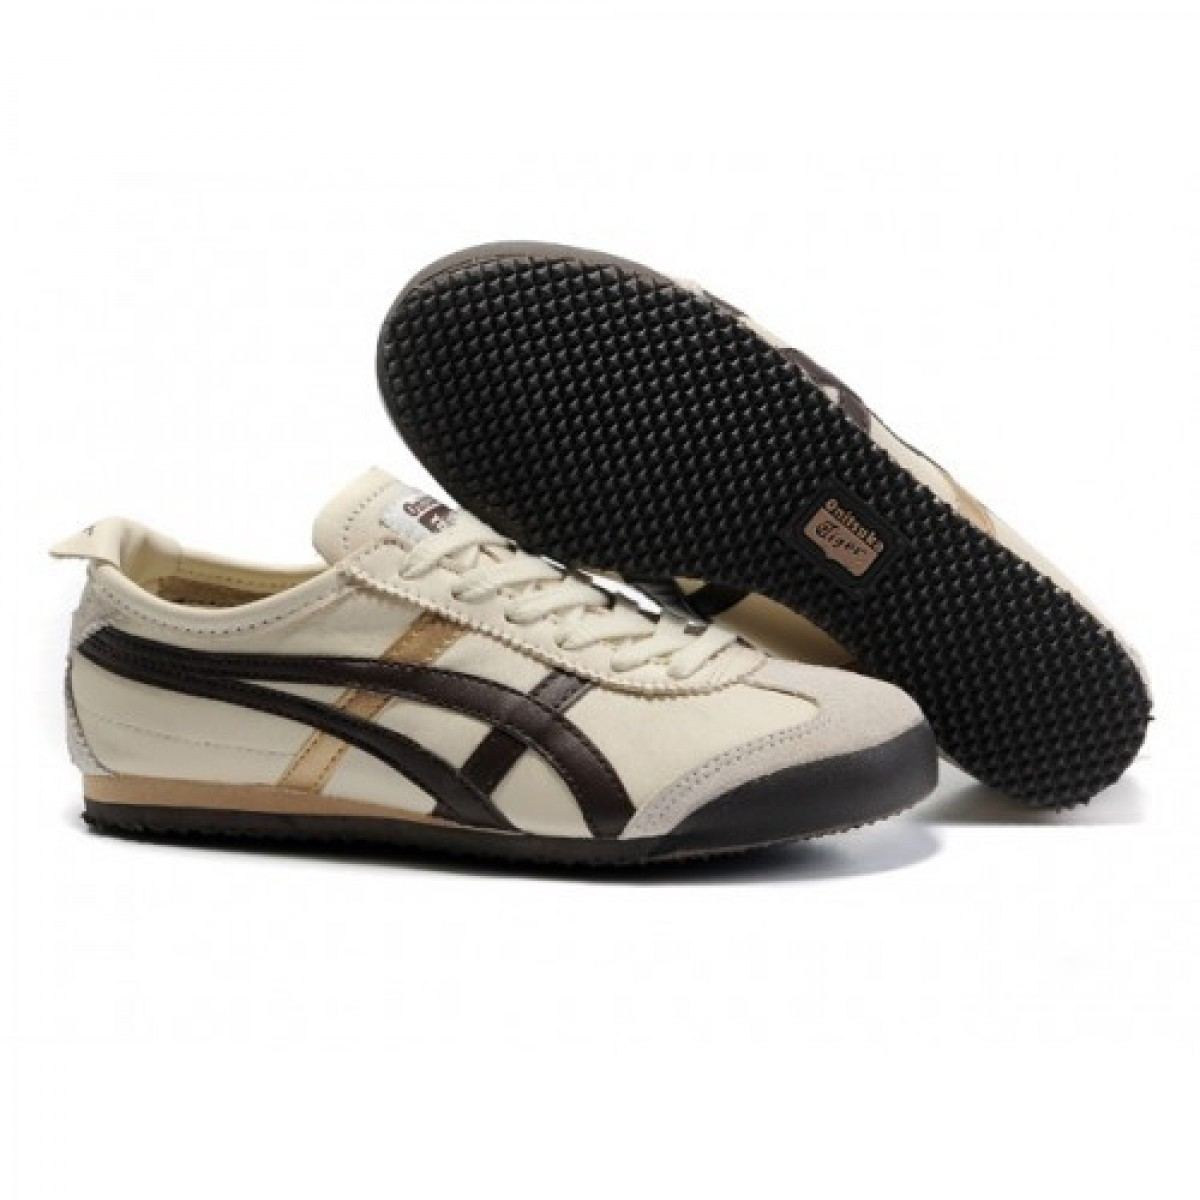 VU3308 Hommes Soldes Asics Onitsuka Tiger Mexico 66 Chaussures Beige Brown 16321262 Pas Cher